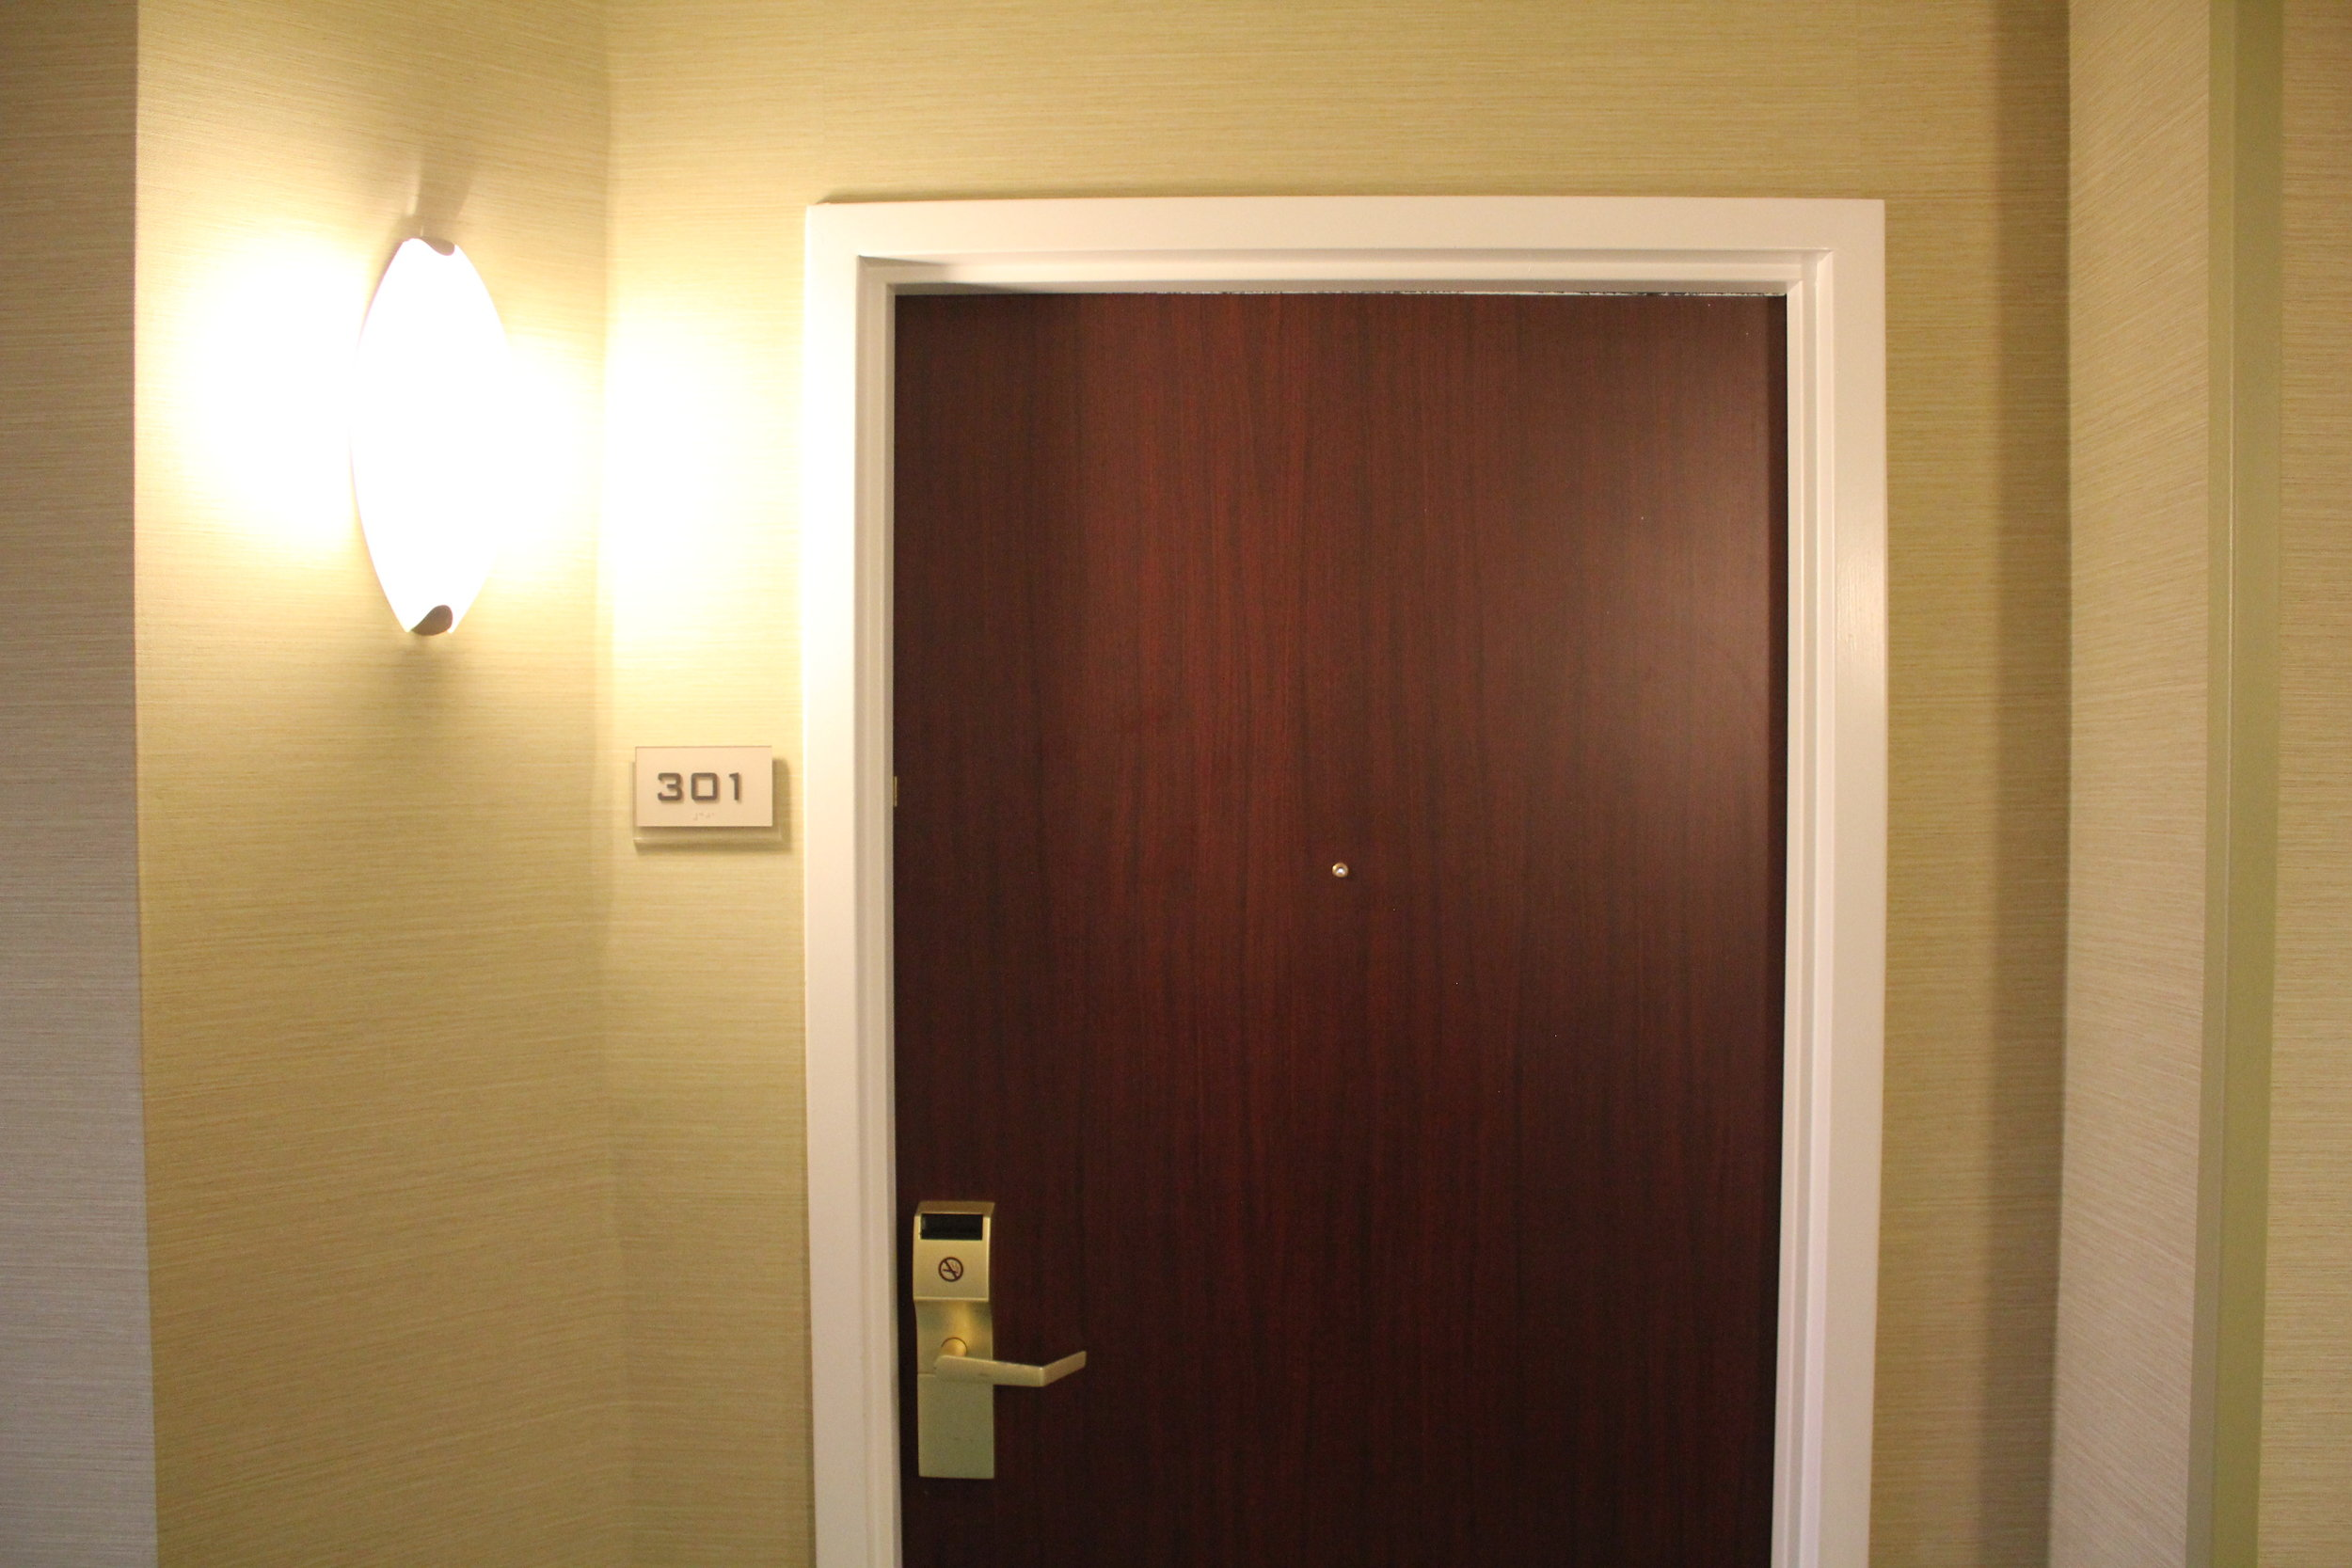 SpringHill Suites Charlotte Airport – Entrance to the room